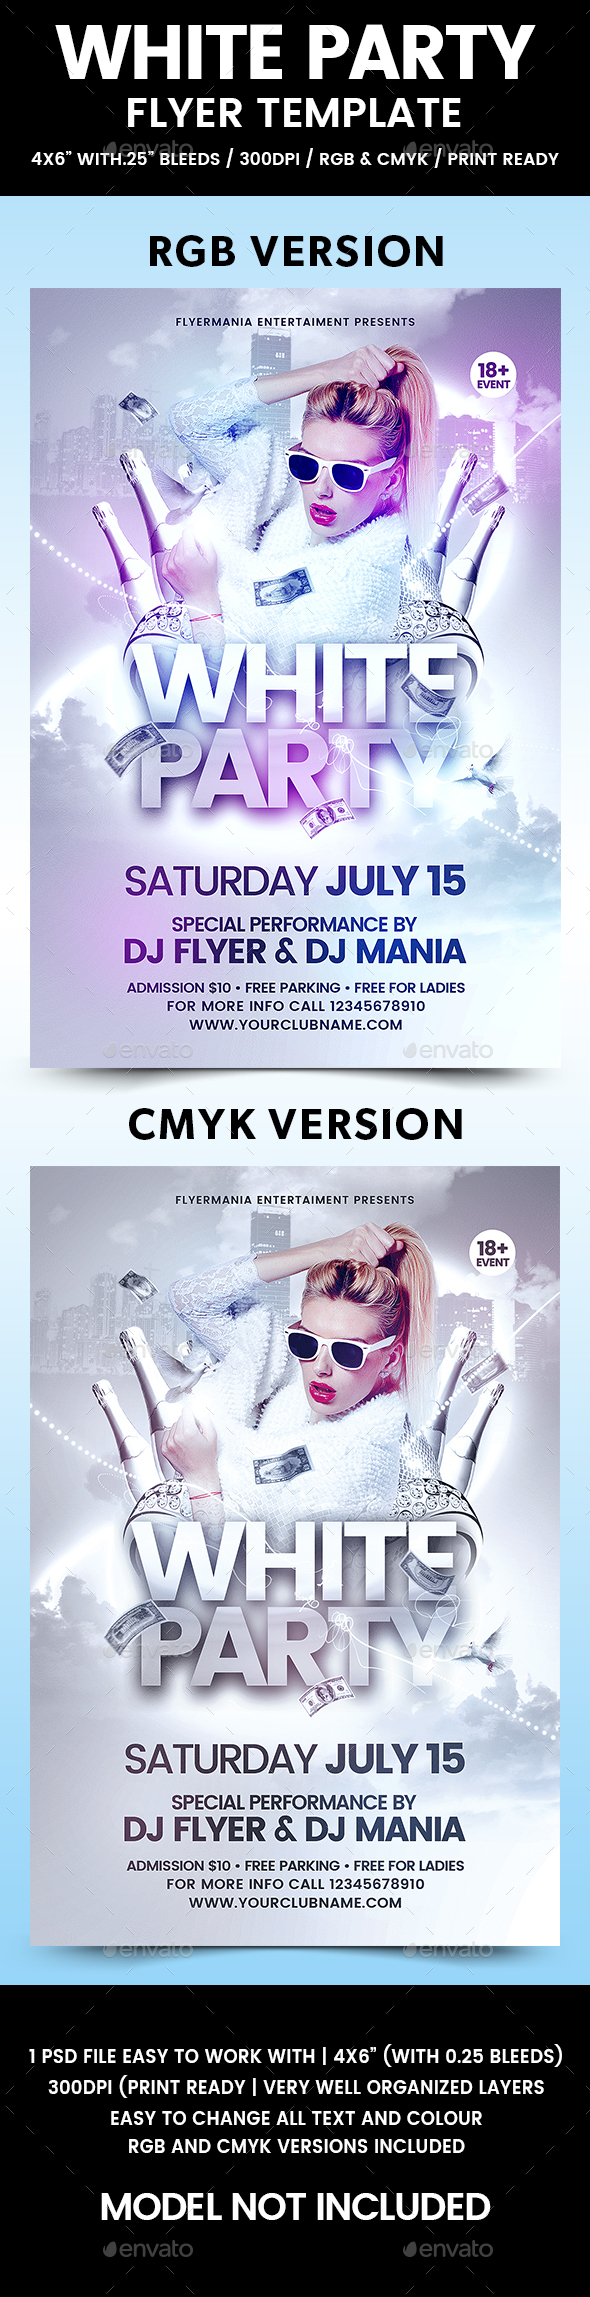 White Party Flyer Template - Flyers Print Templates